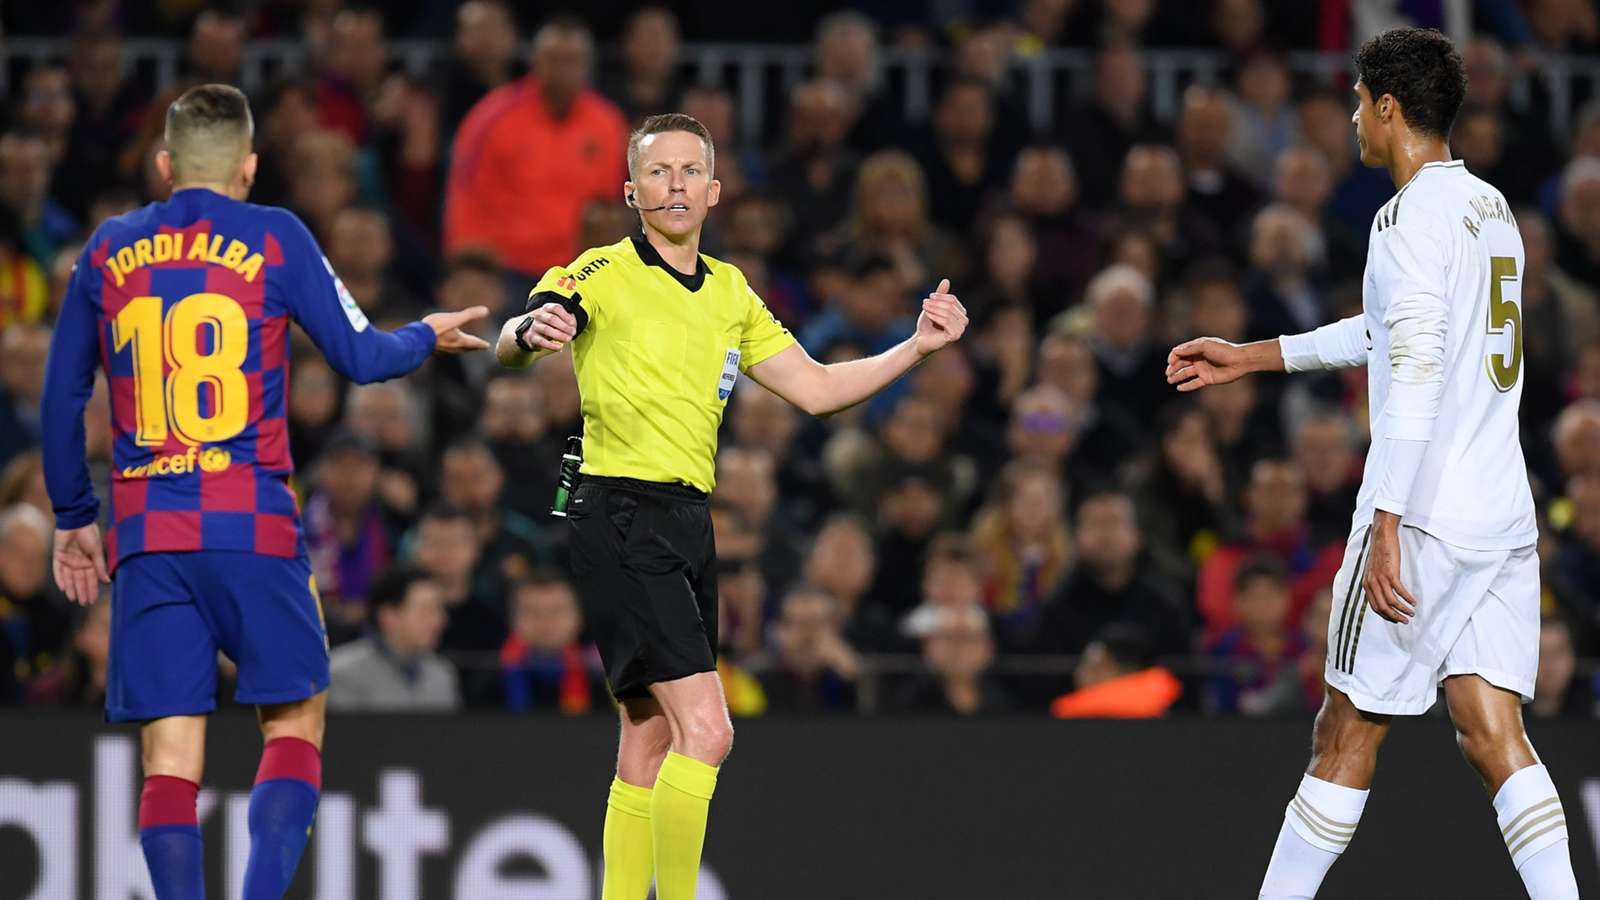 Disclosure of details of the dialogue between the referee of the arena and the video in The Clasico